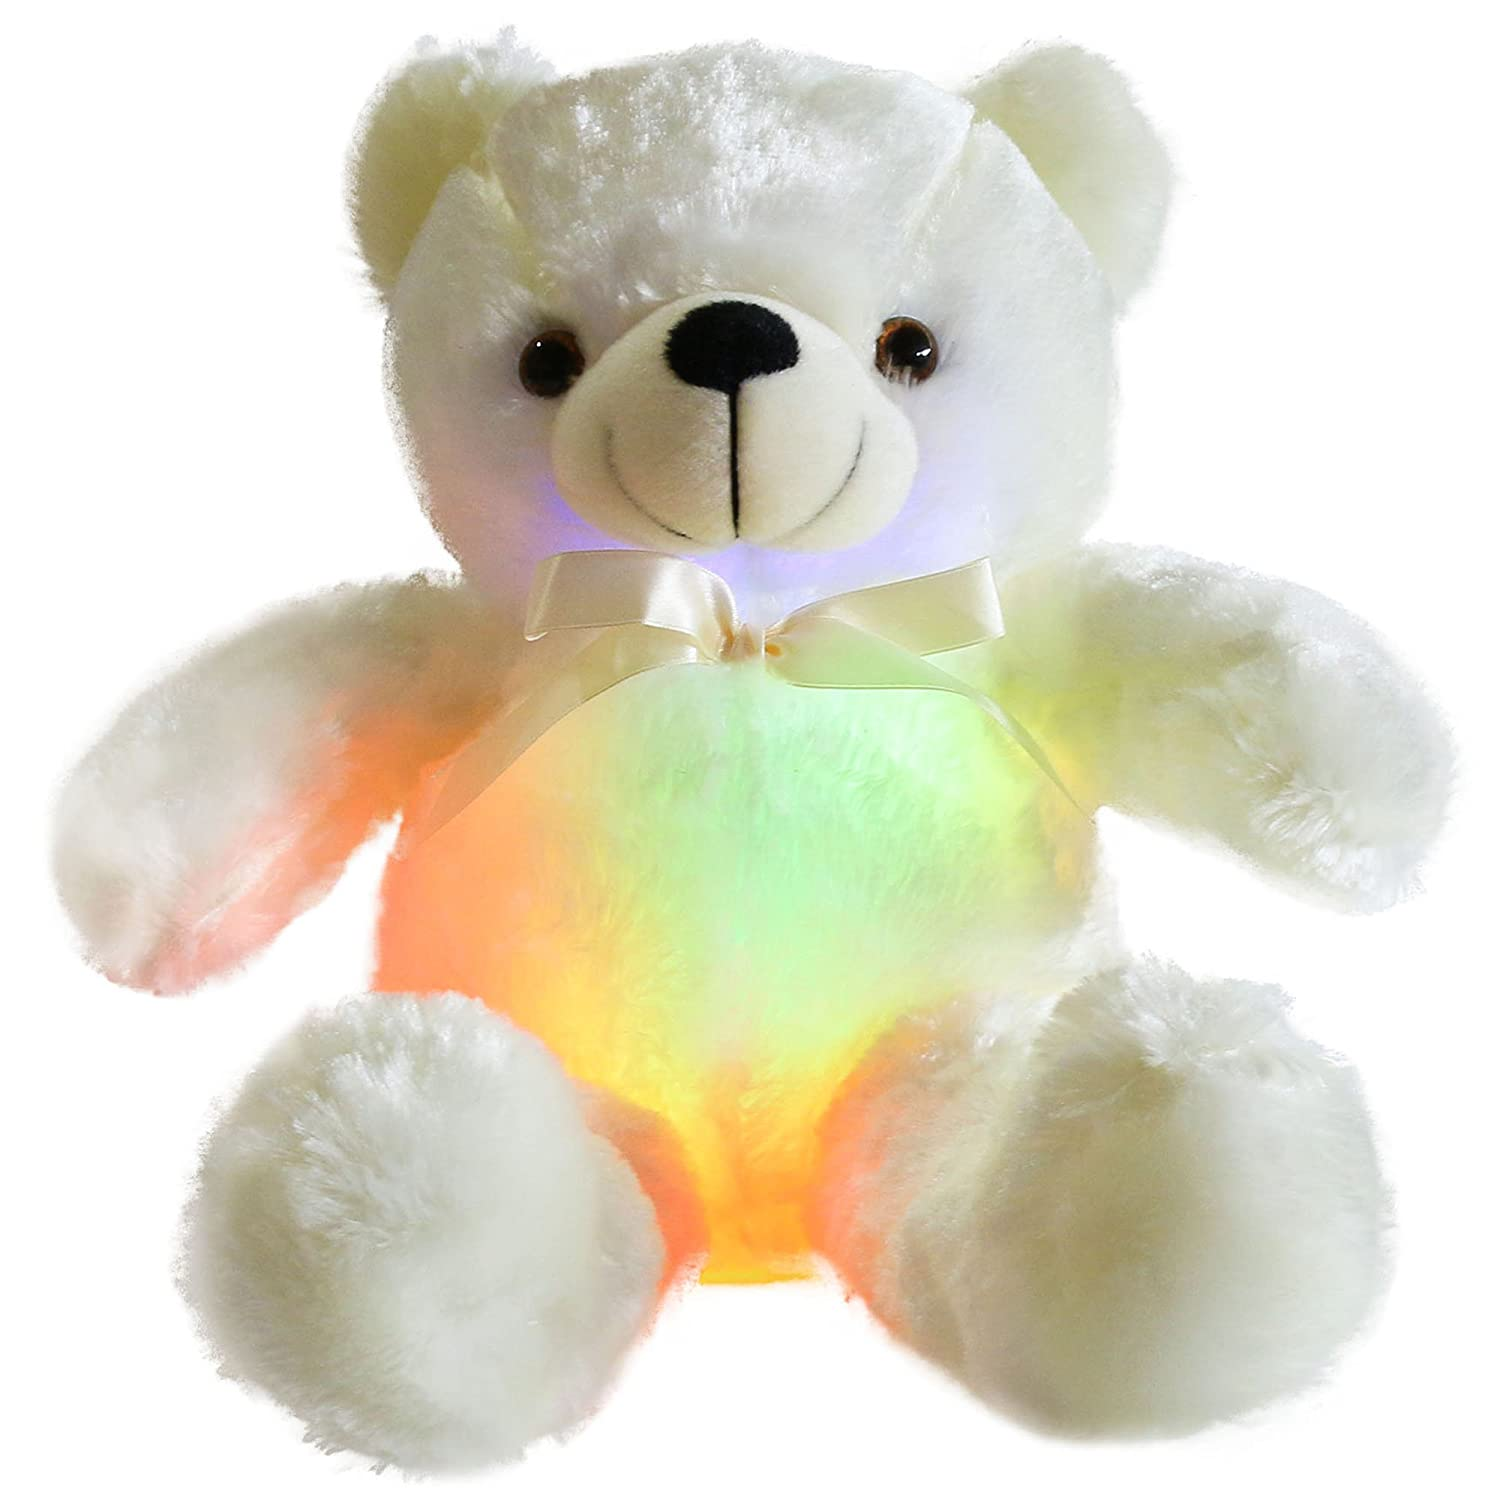 Amazon WEWILL Creative Light Up LED Inductive Teddy Bear Stuffed Animals Plush Toy Colorful Glowing For Kids 20 InchWhite Toys Games